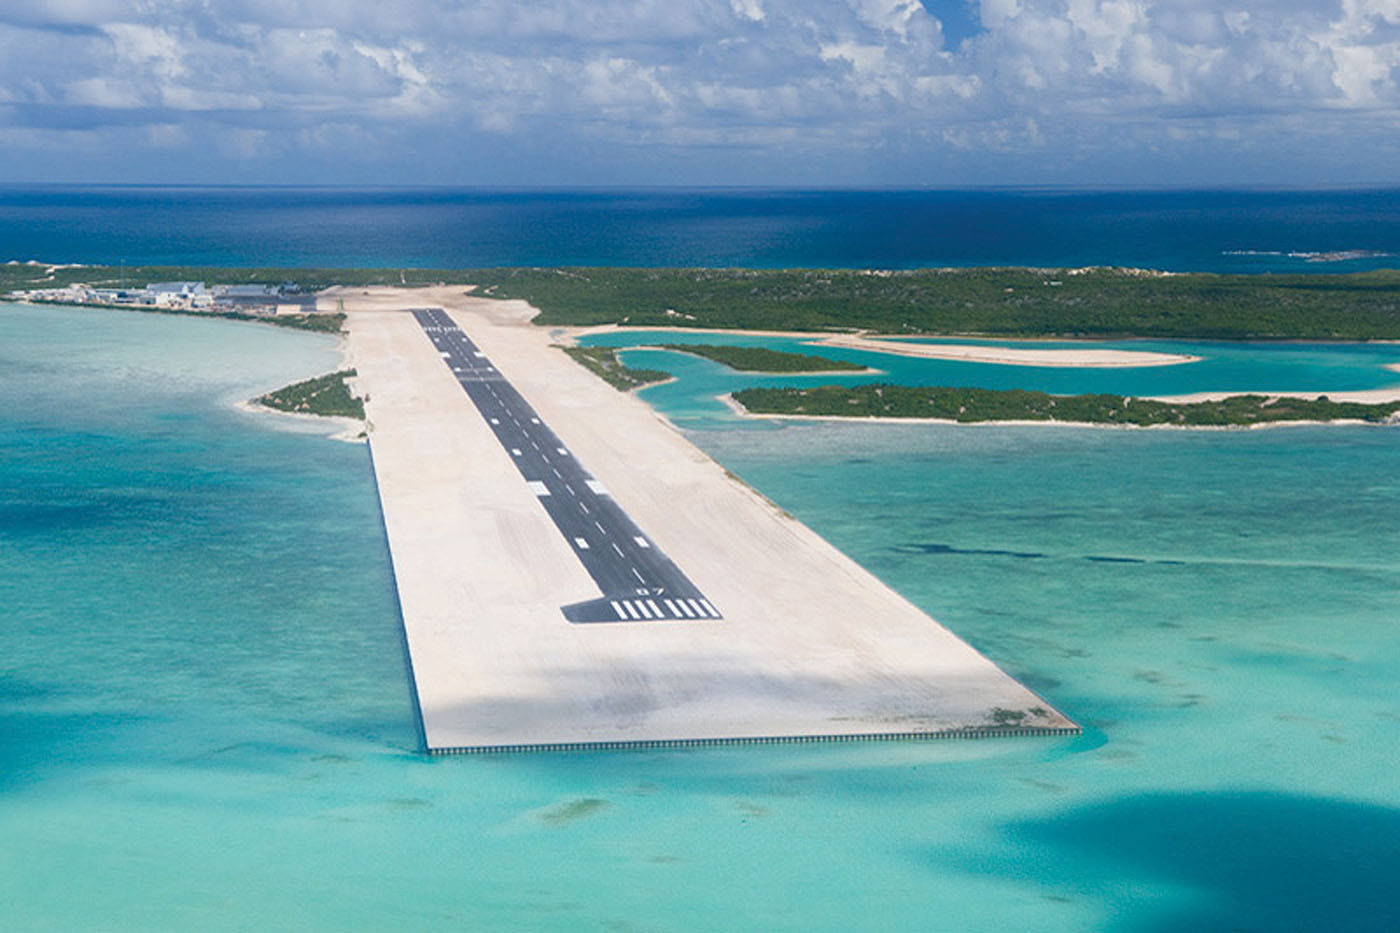 turkey helicopter with Turks And Caicos Islands Travel Guide on Top 10 cargo aircraft moreover Angkor Wat Cambodia as well SC B25 airplane pulled out from lake murray  south carolina also Hong Kong China further Mount Roraima Venezuela.